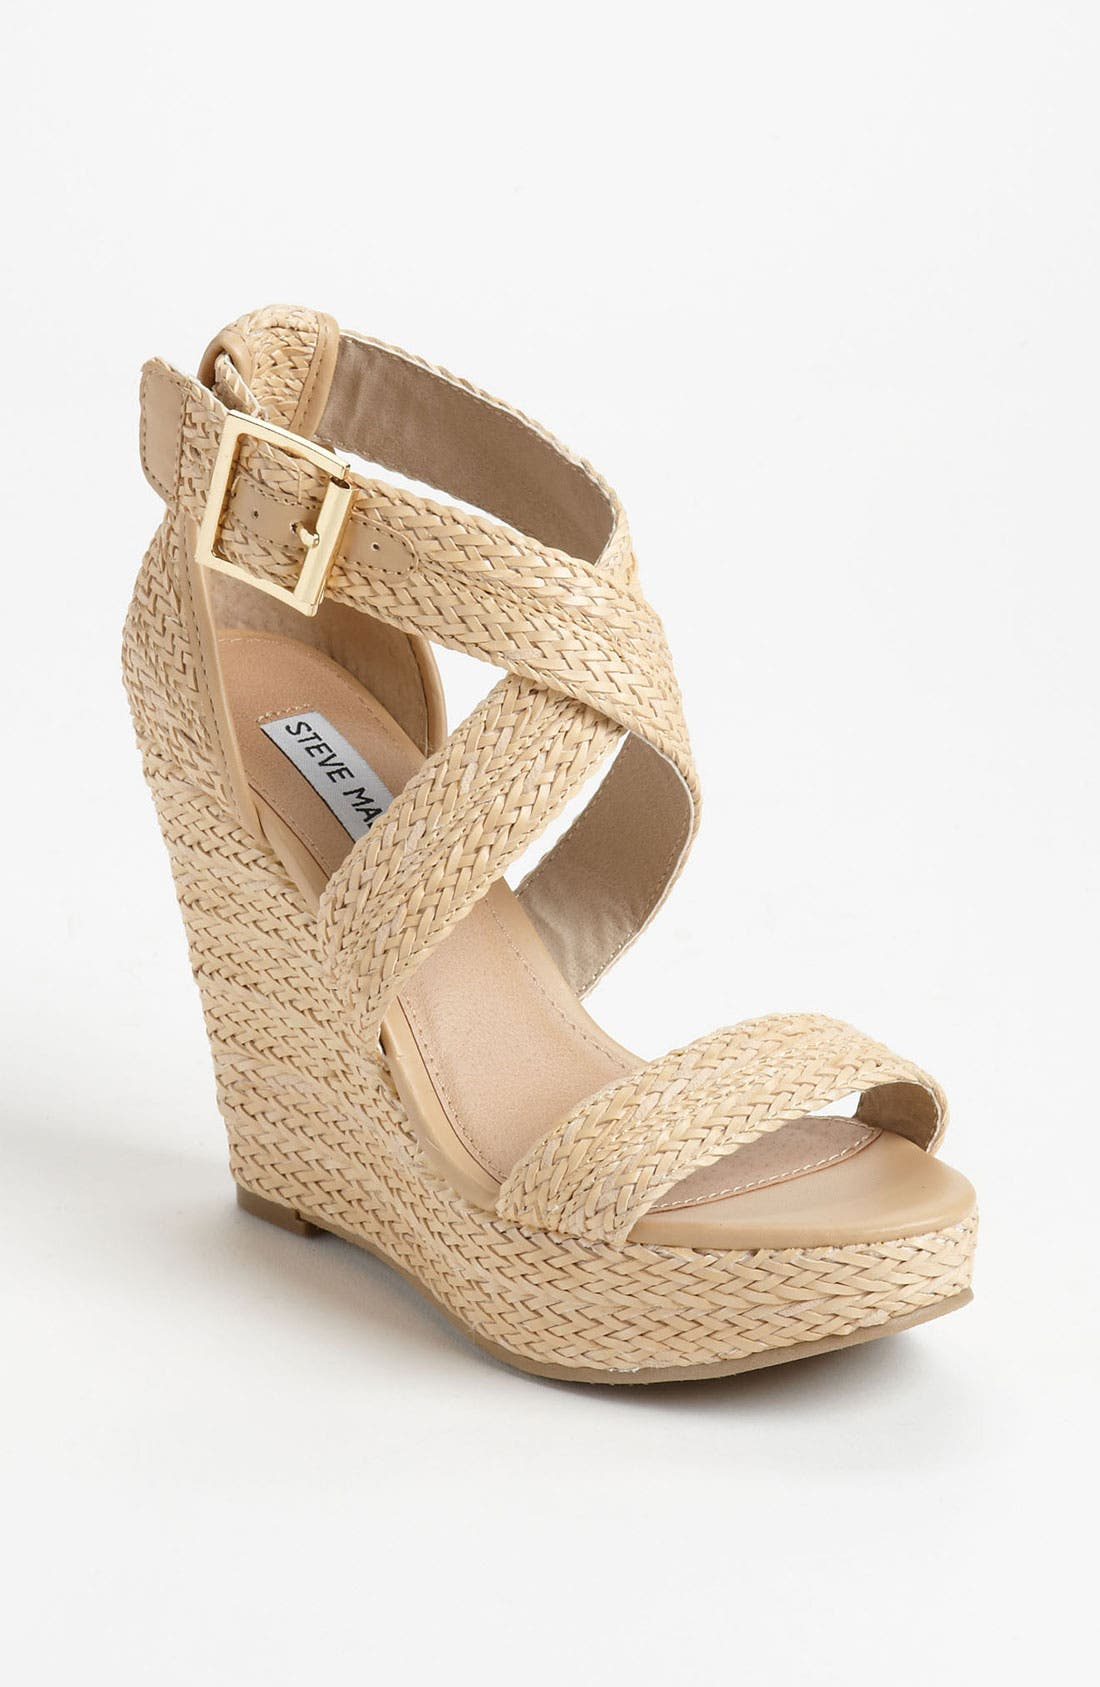 'Haywire' Wedge Sandal,                             Main thumbnail 1, color,                             250